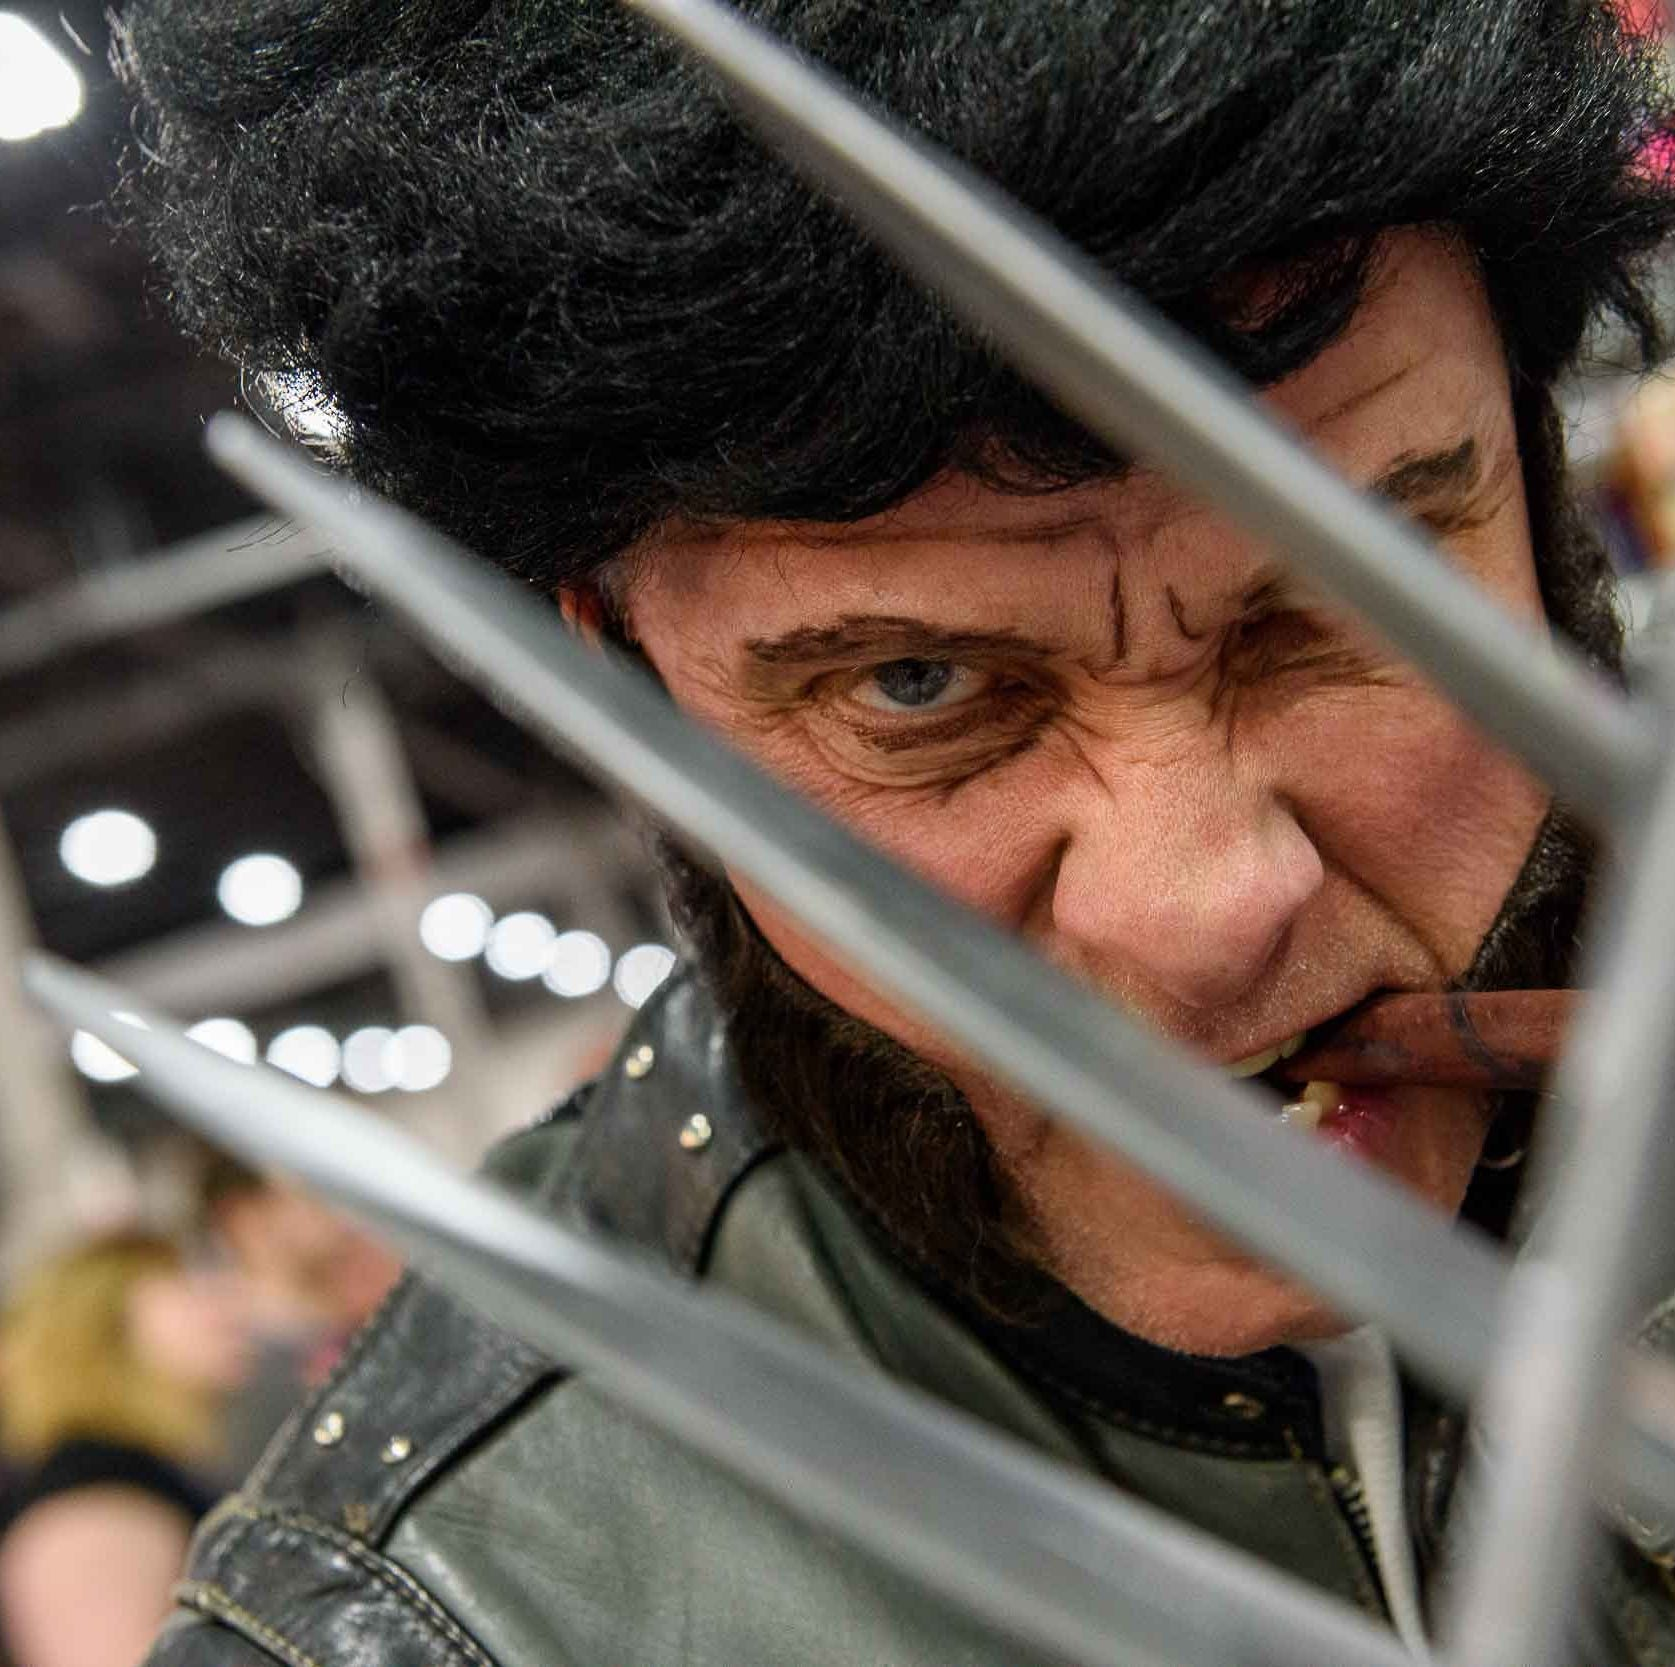 Motor City Comic Con 2019 opening day brings out costumes, comics and more